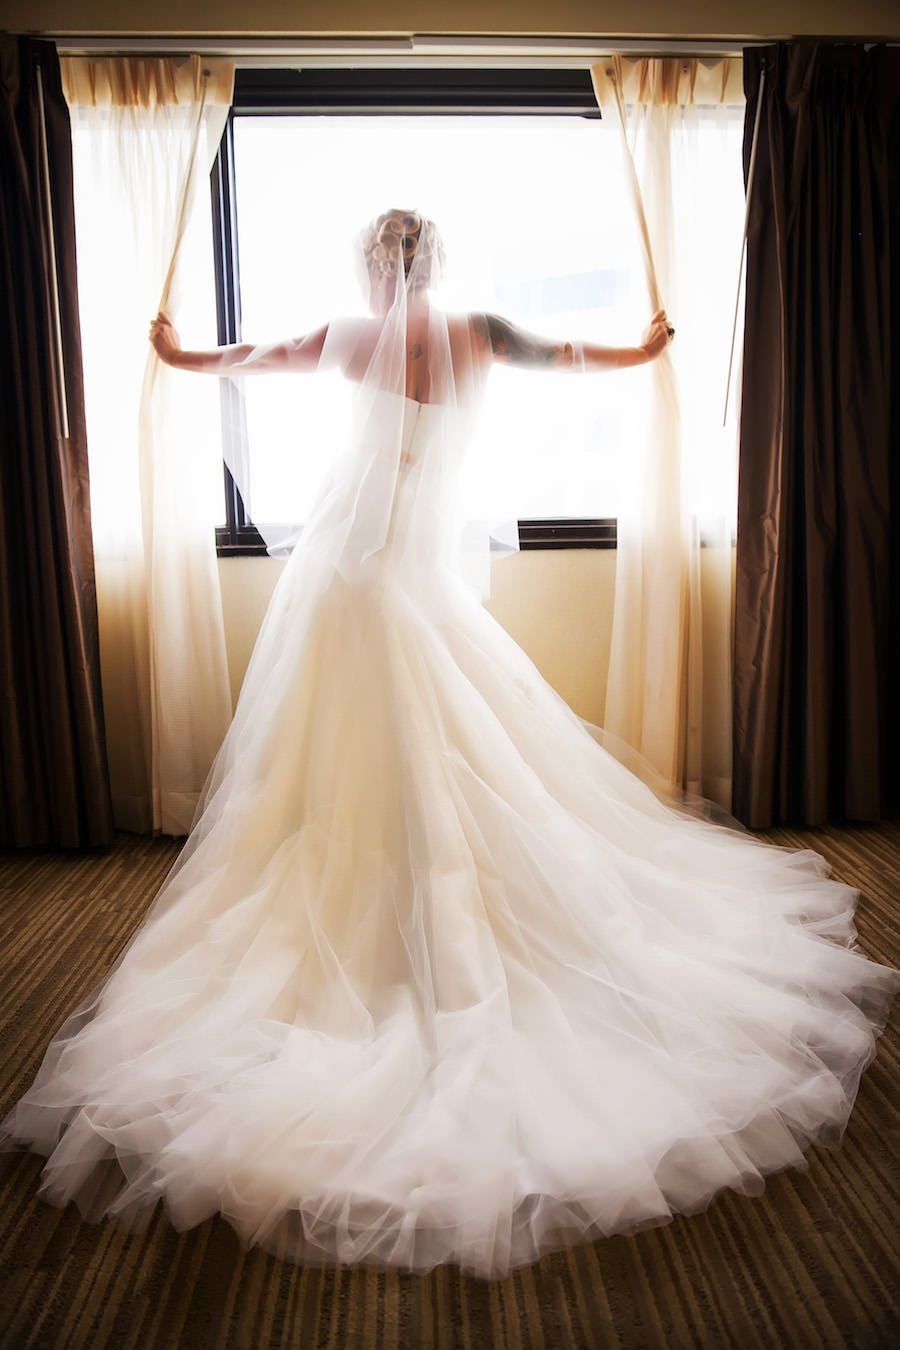 Indoor Bridal Wedding Portrait In Window With Strapless White Dress And Veil